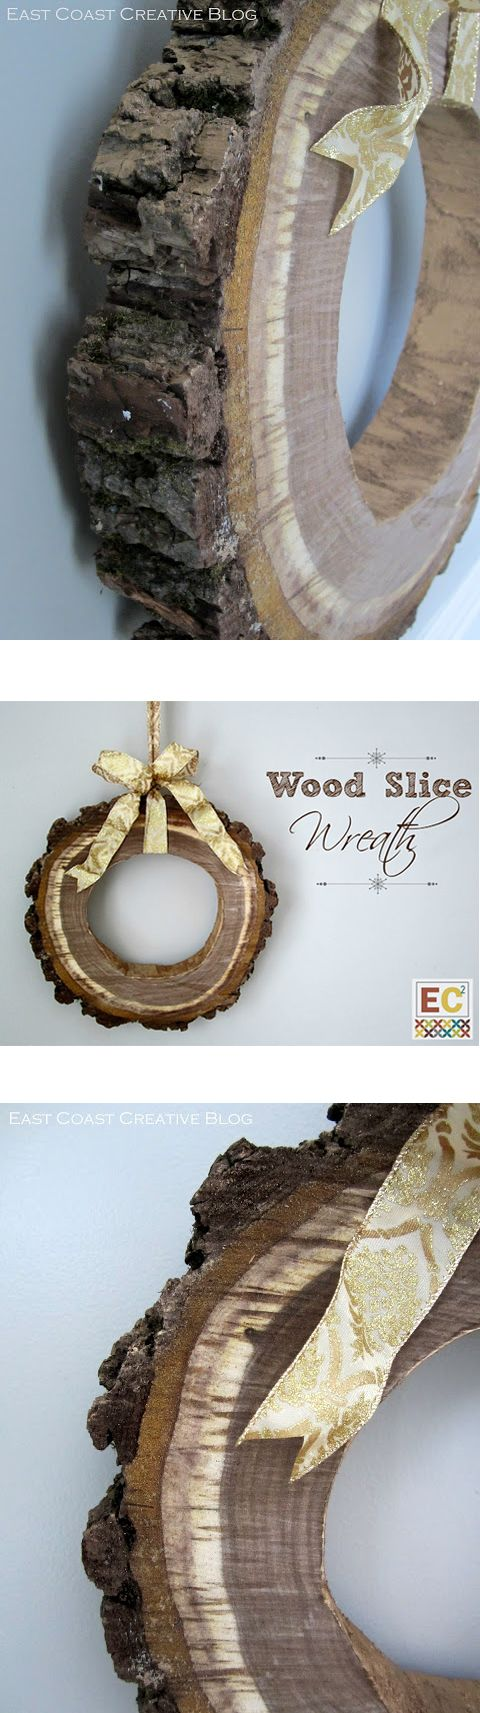 DIY Christmas Wooden Wreath from a tree slice by East coast creative blog